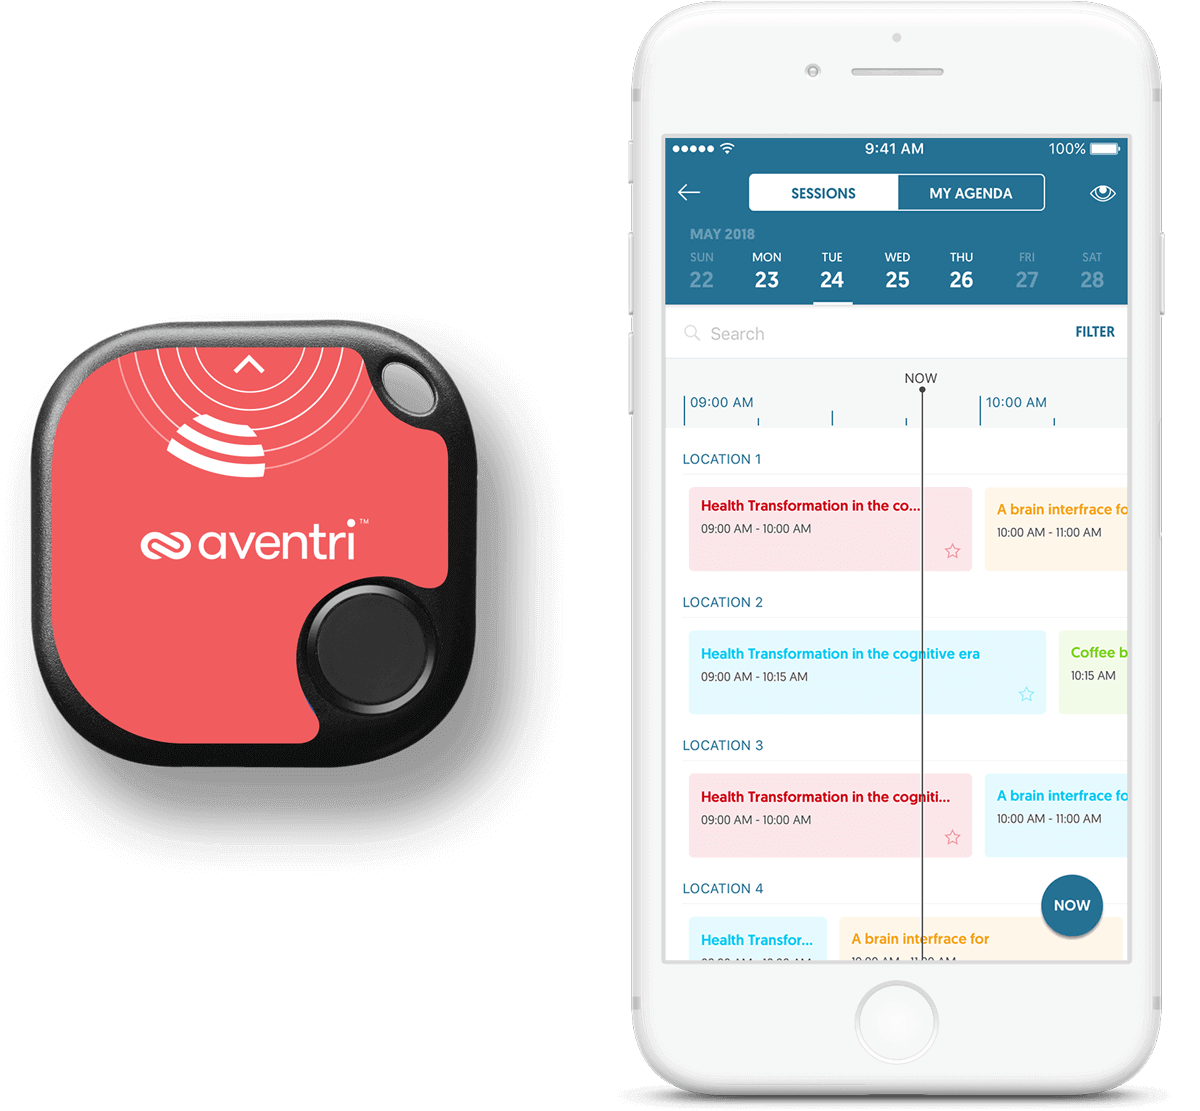 Mobile event app attendee engagement